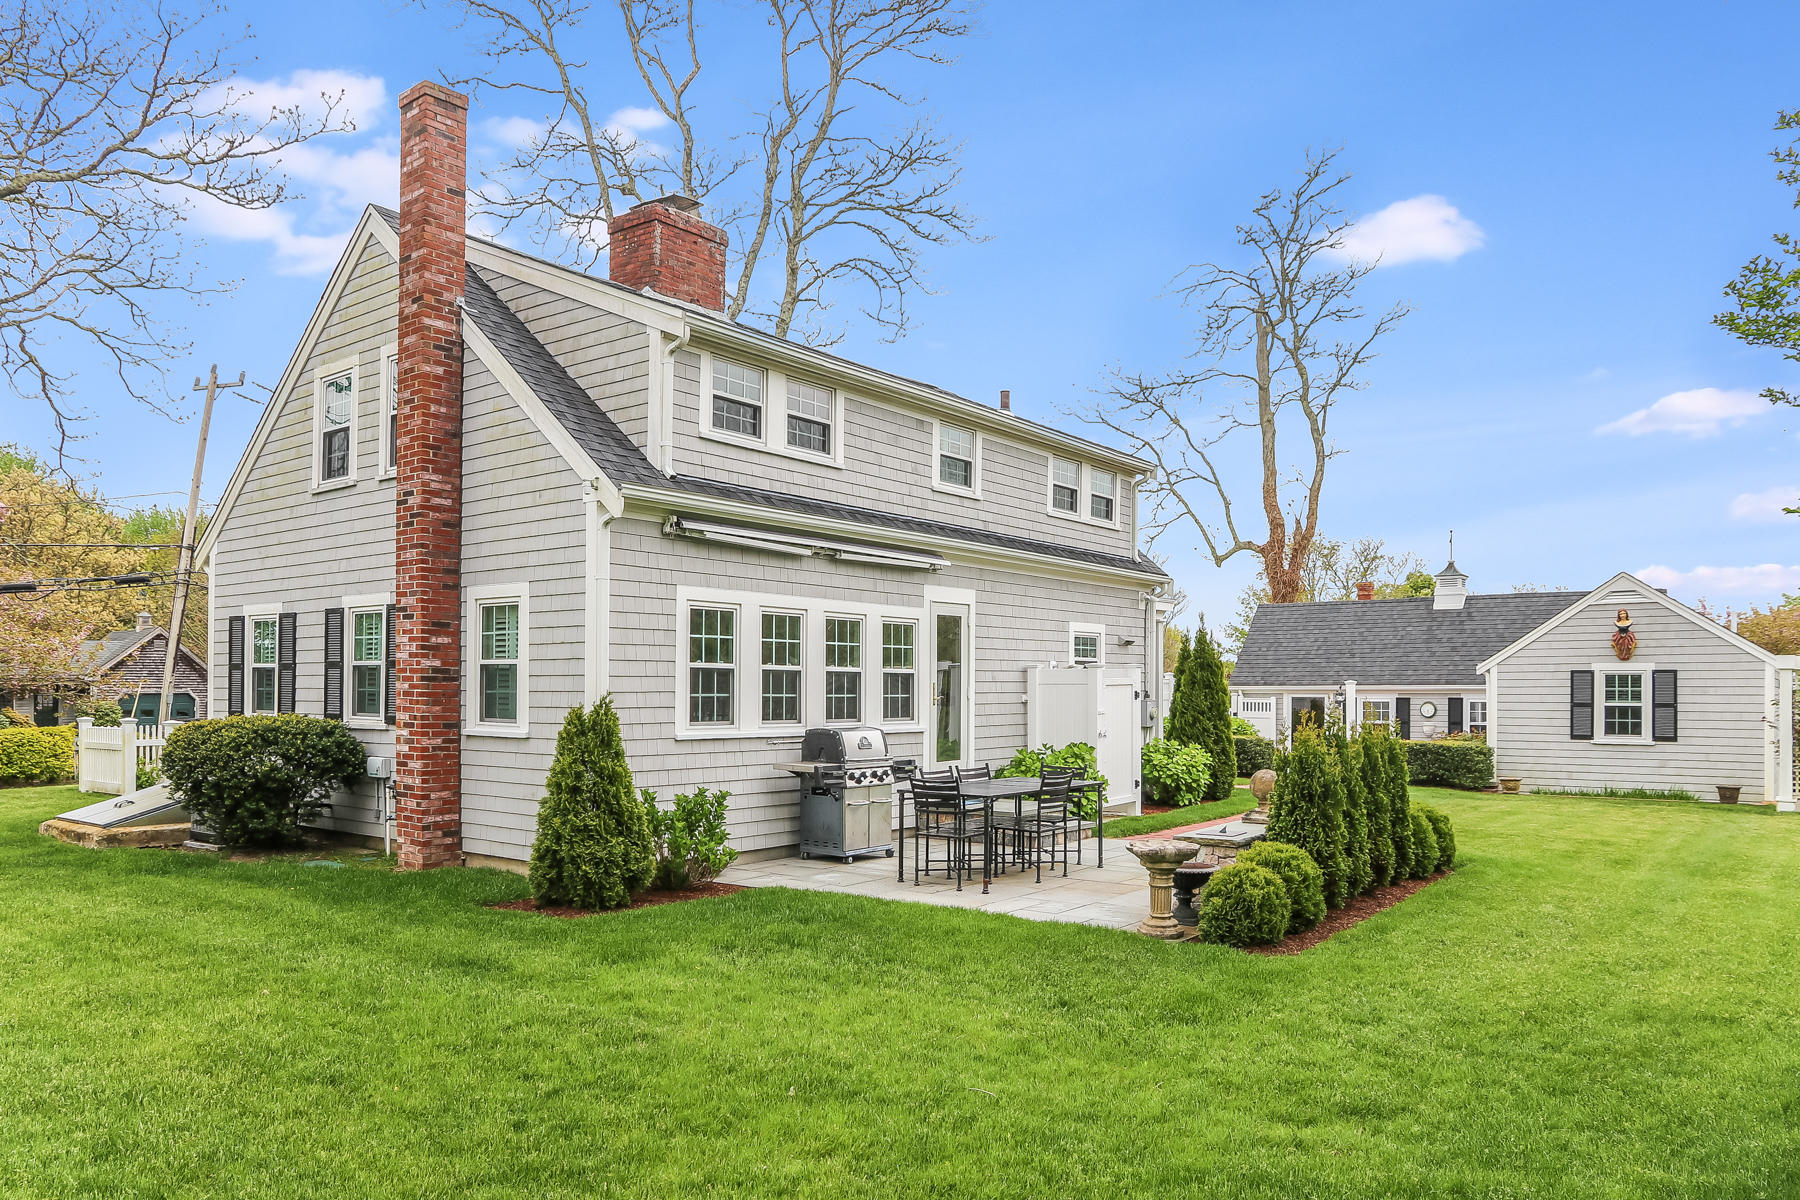 751 Crowell Road, North Chatham MA, 02650 details